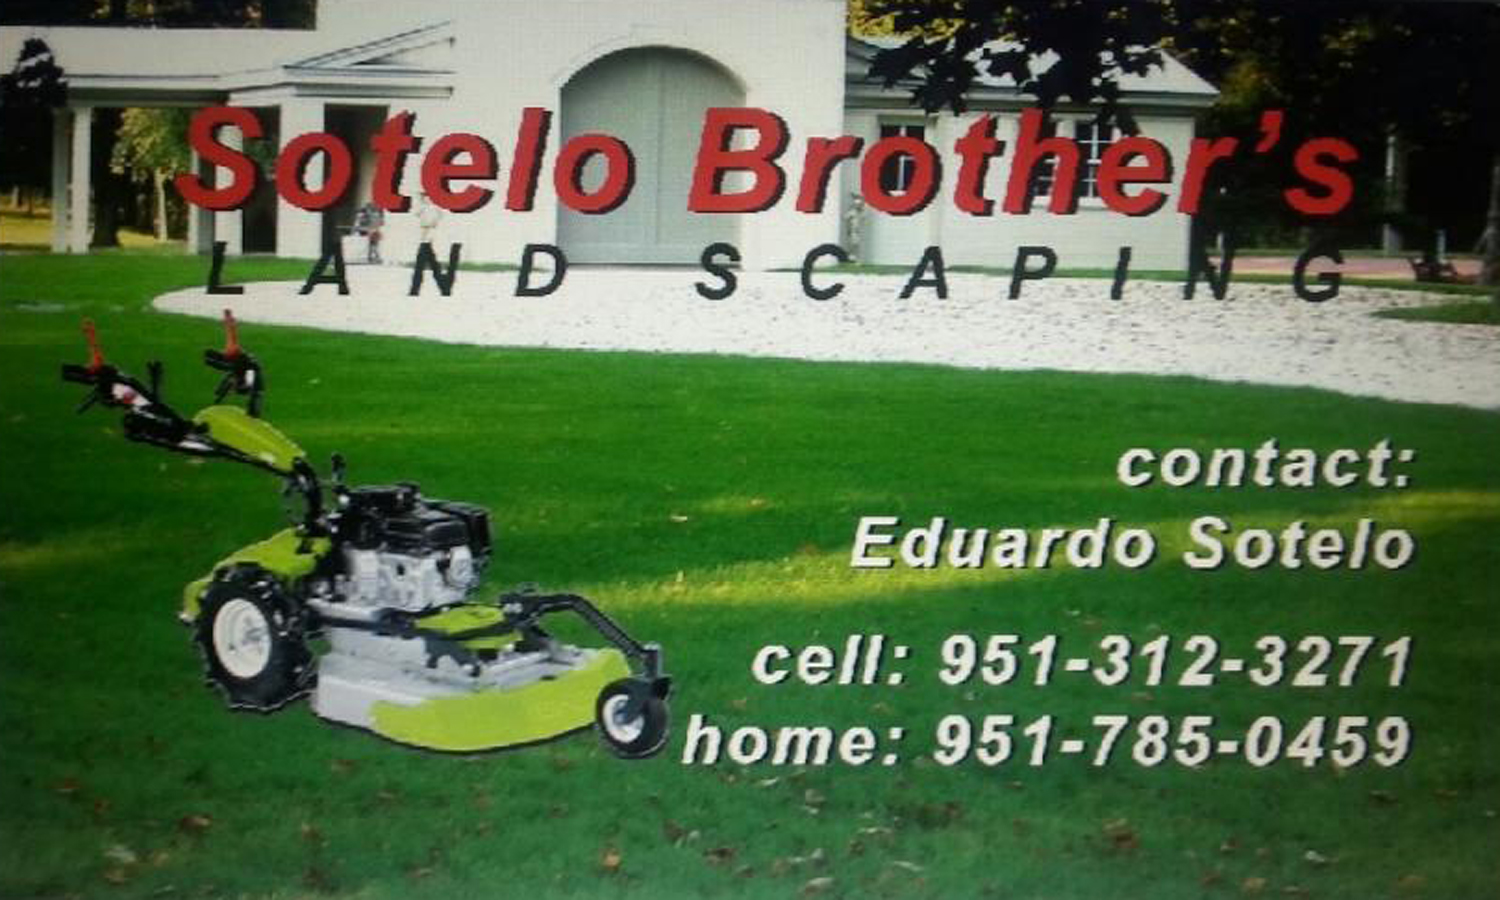 Sotelo Brother's Landscaping